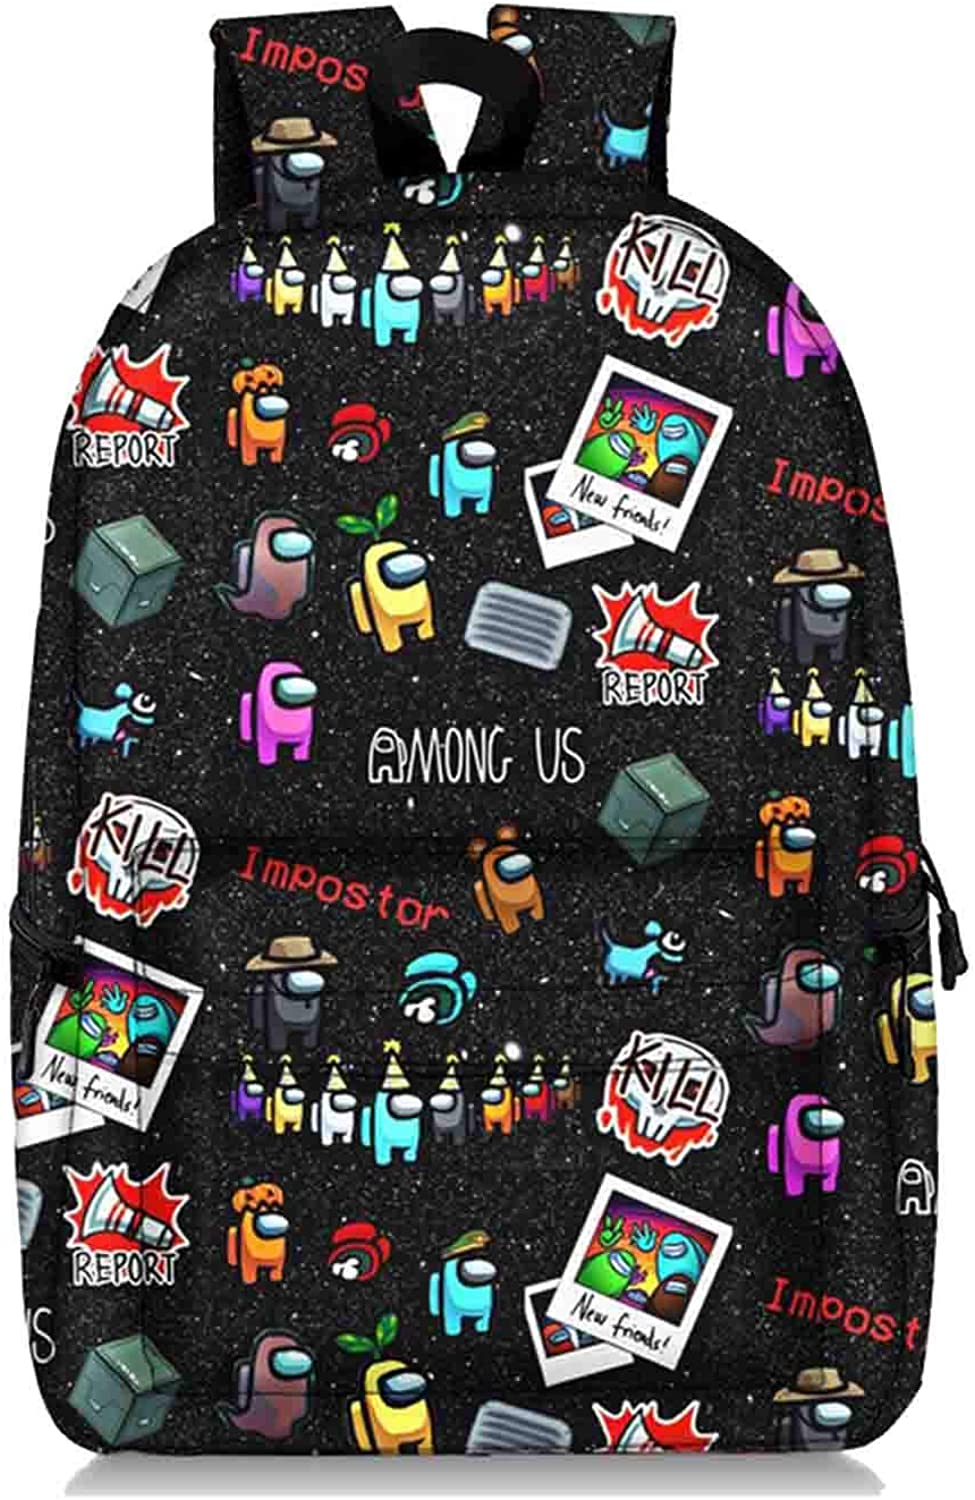 Among Us Printed Unisex Backpack High-Capacity Wear-Resistant Book Bags for Boys and Girls Daypack